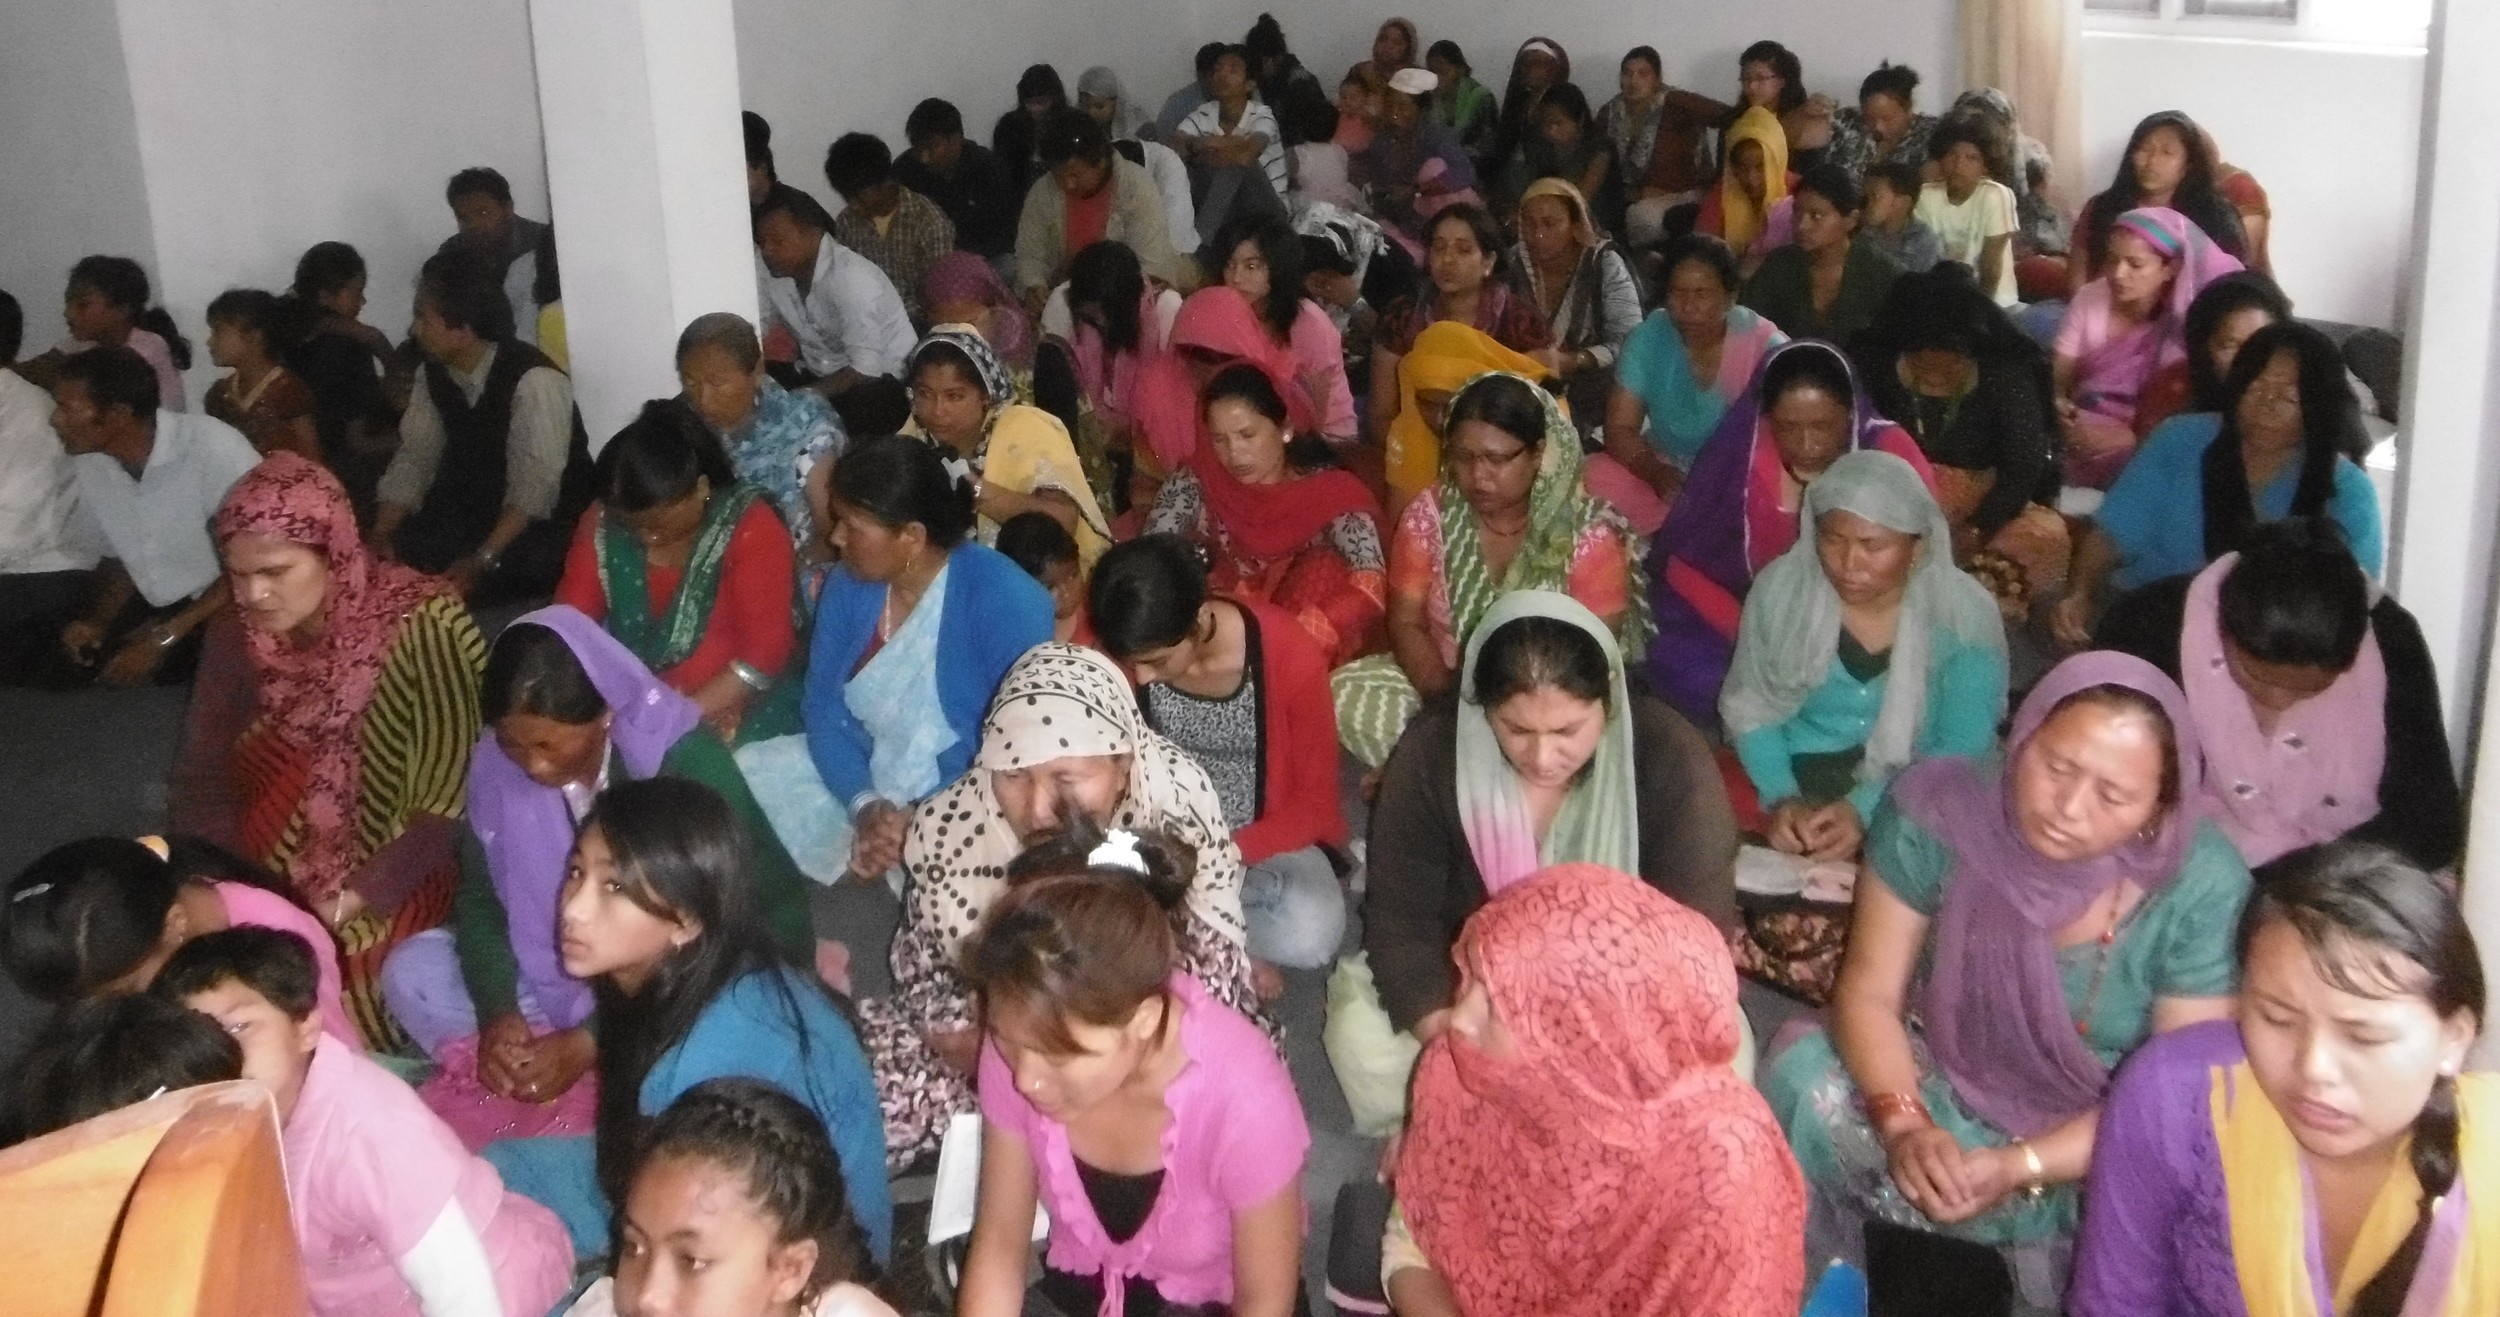 Part of Mukunda's congregation at worship. He started with nothing but has 200 worshippers now.